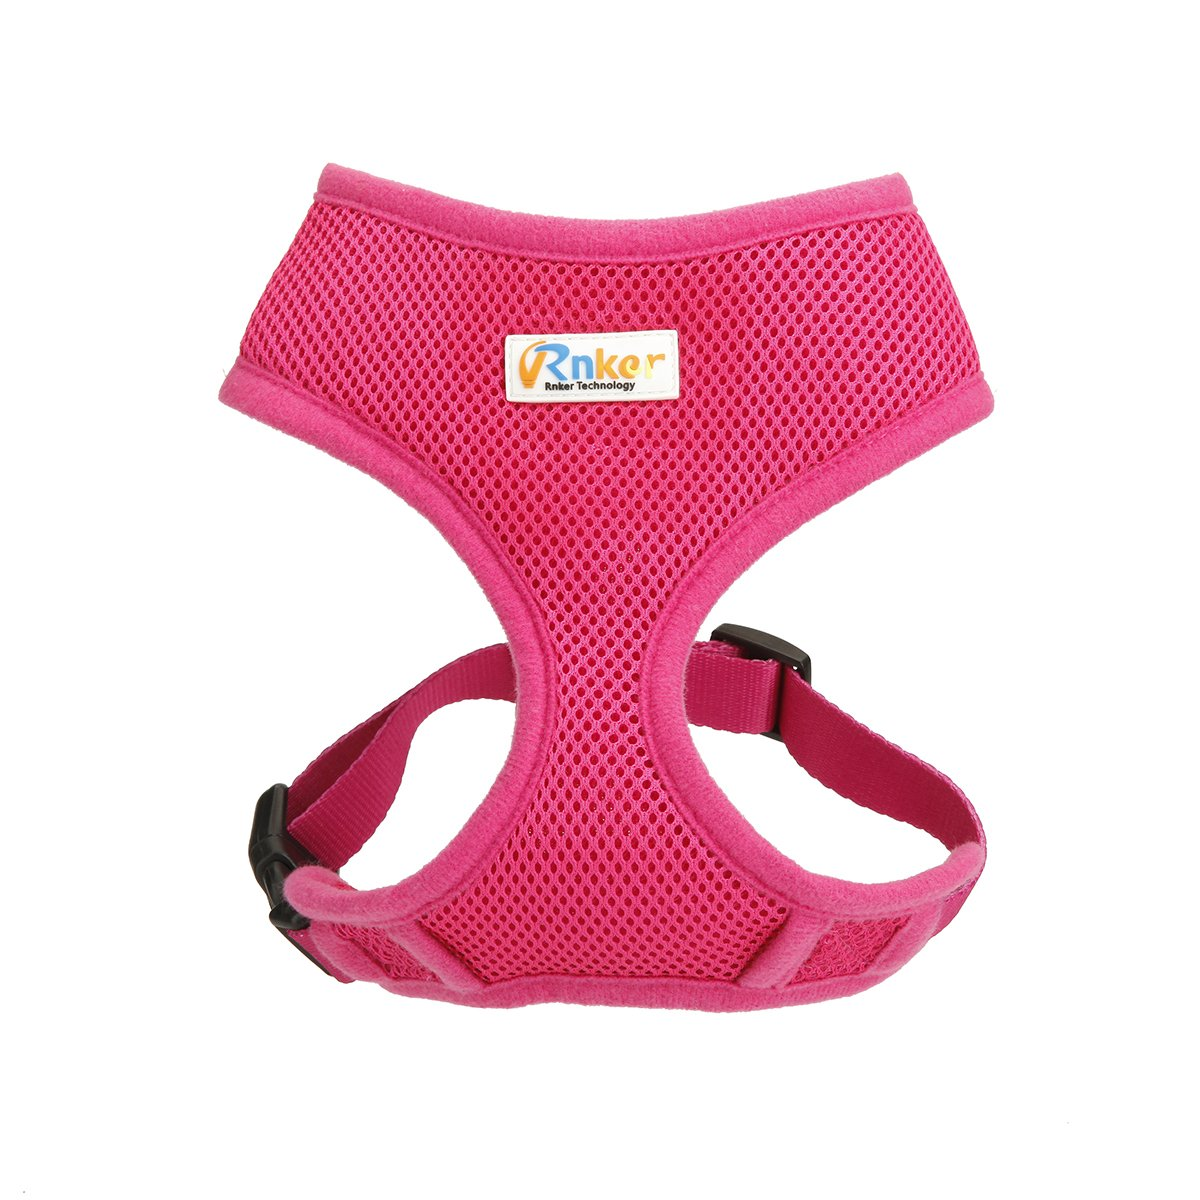 Pink XS (9-13'' chest girth) (max neck girth 7.5\ Pink XS (9-13'' chest girth) (max neck girth 7.5\ Rnker Soft Mesh Dog Harnesses Padded Vest No Pull Comfort Double Layer Harness for Pet Puppy